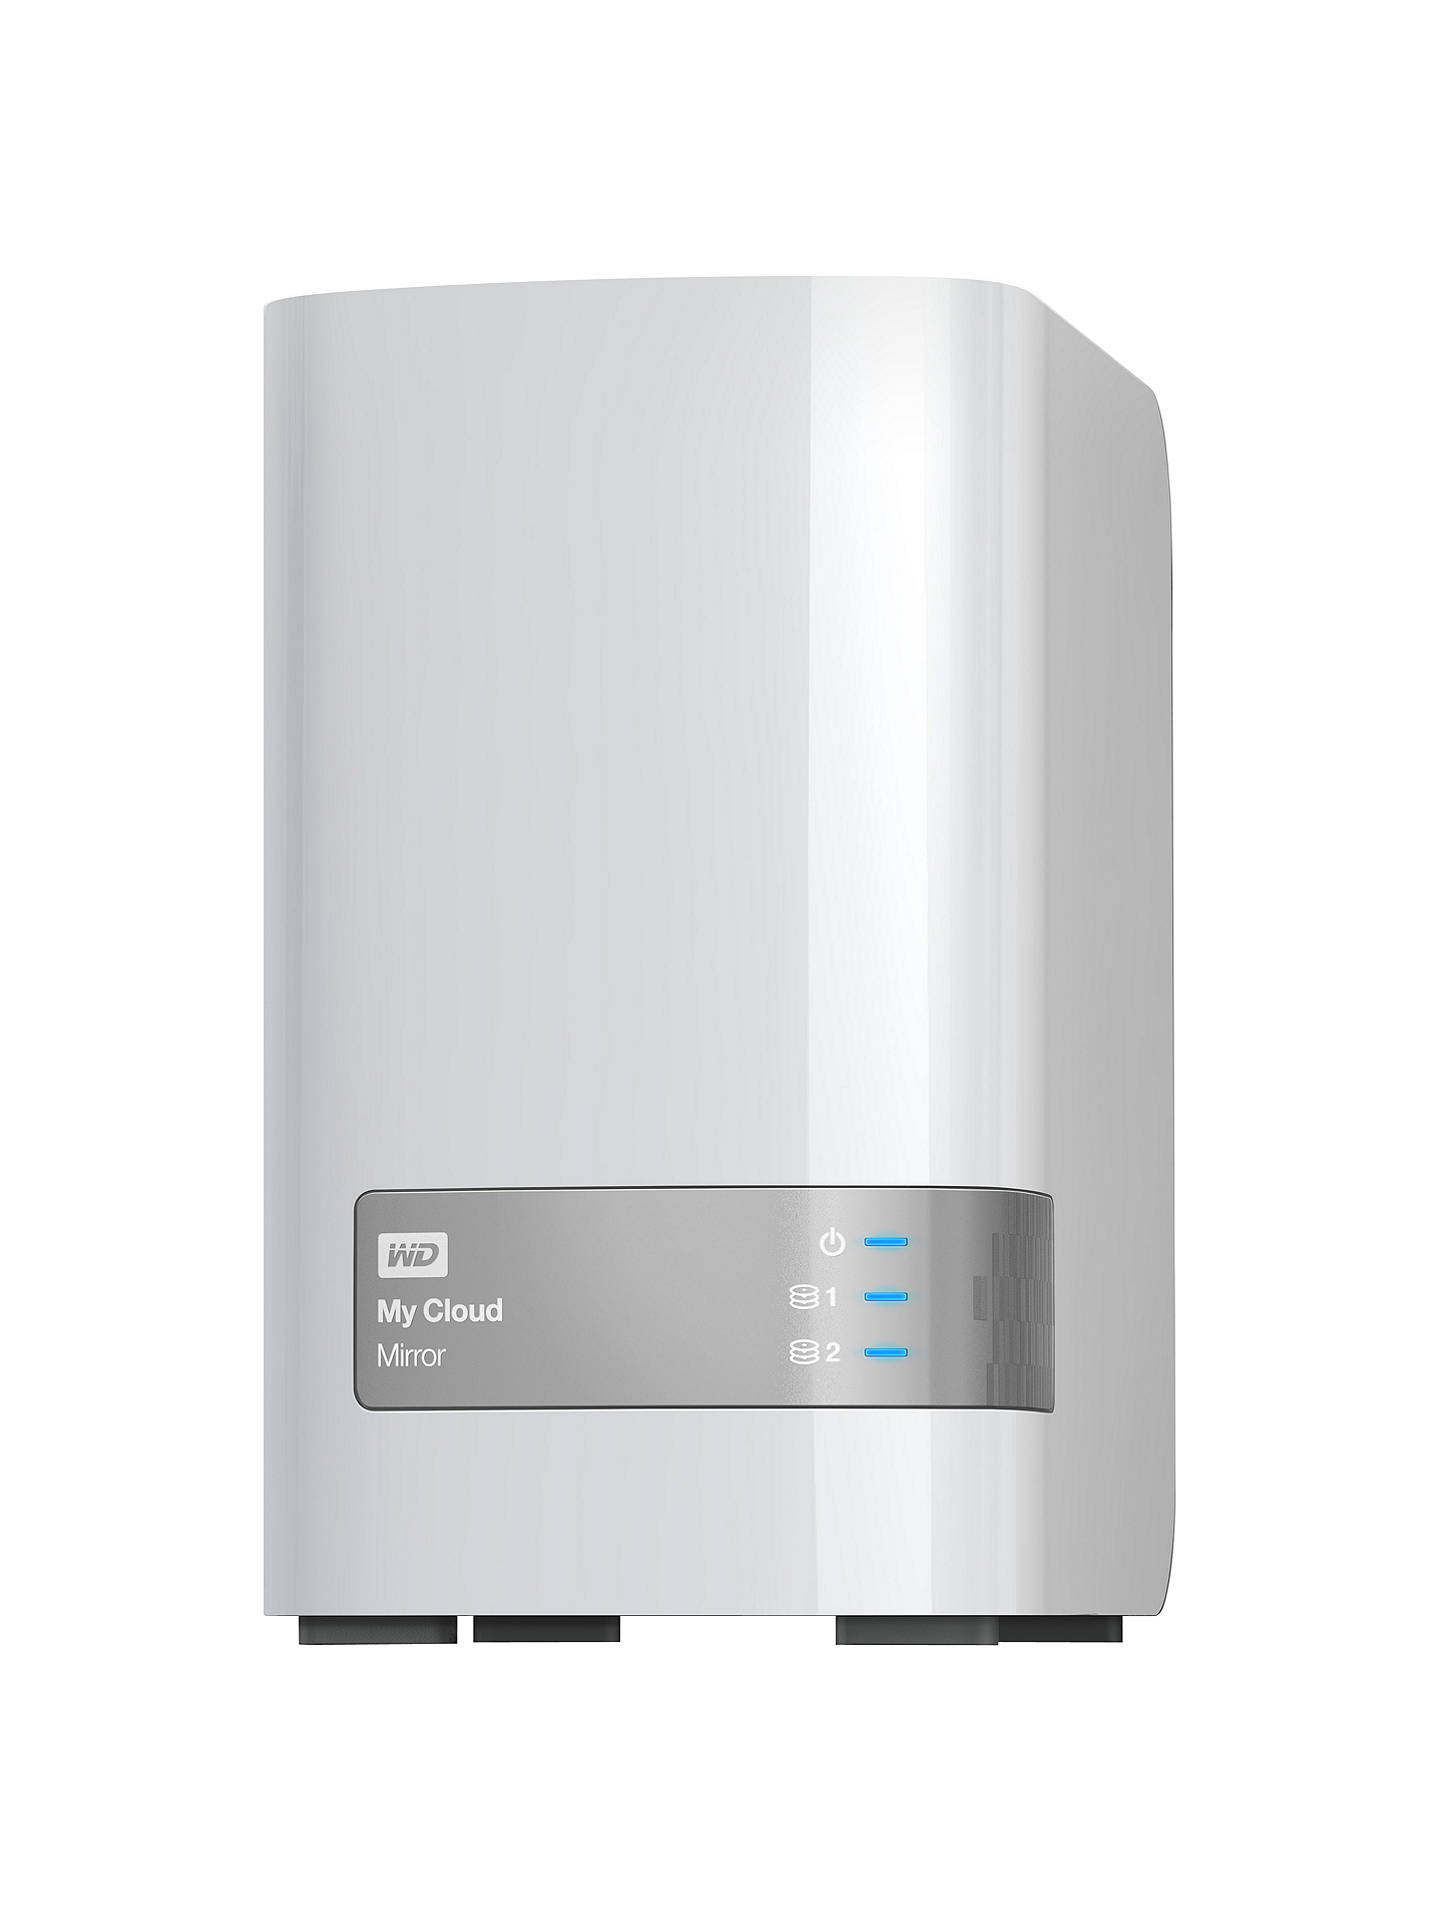 WD My Cloud Mirror, Personal Cloud Storage & Network